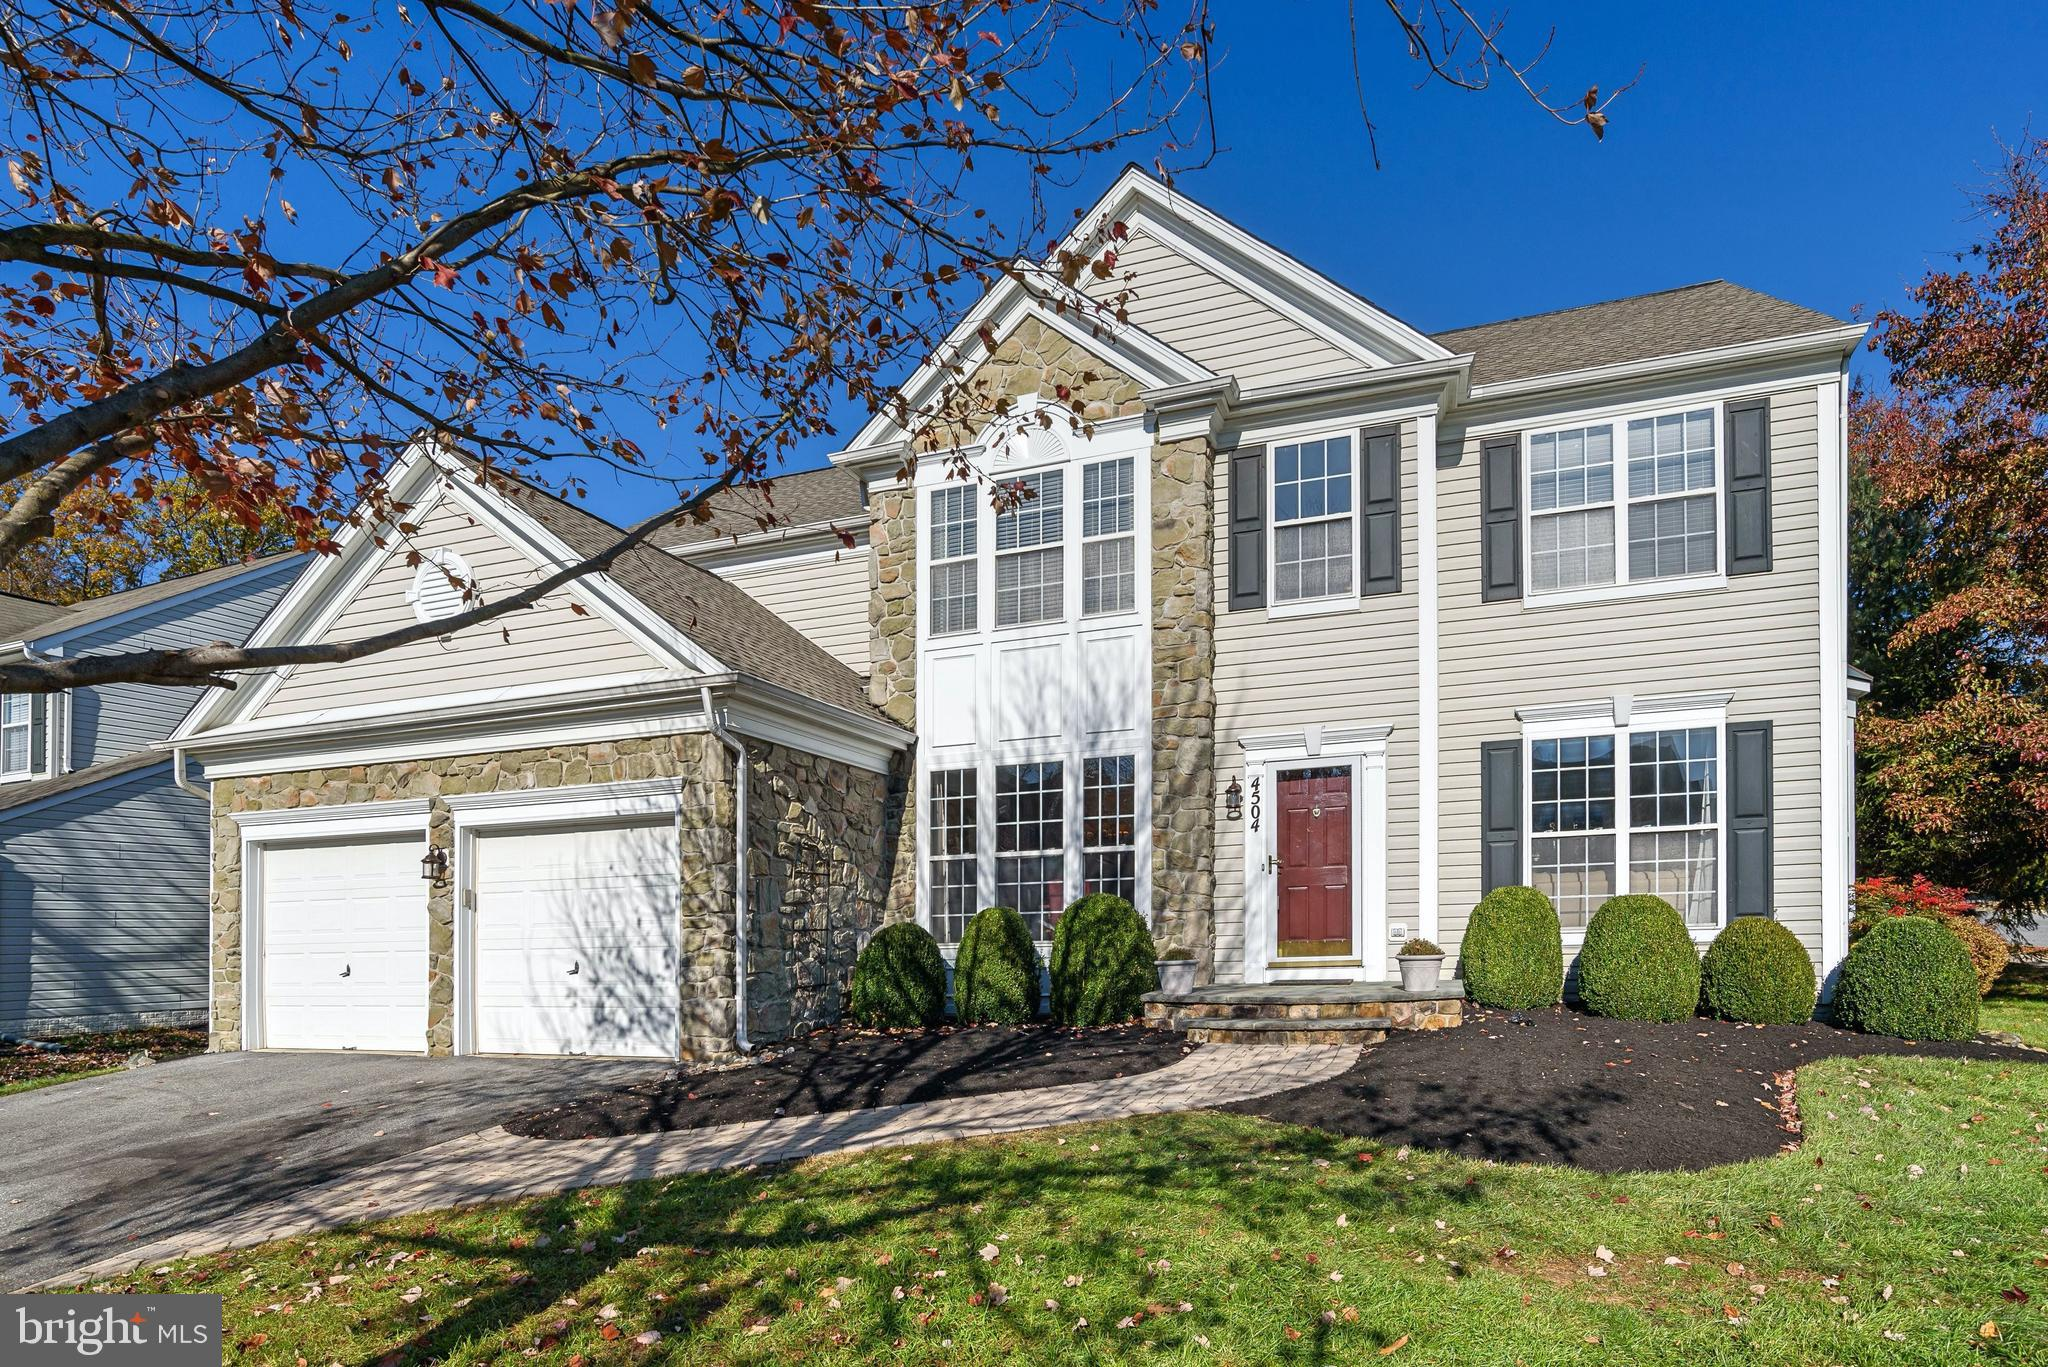 4504 HIDDEN HOLLOW Dr, Ellicott City, MD, 21043